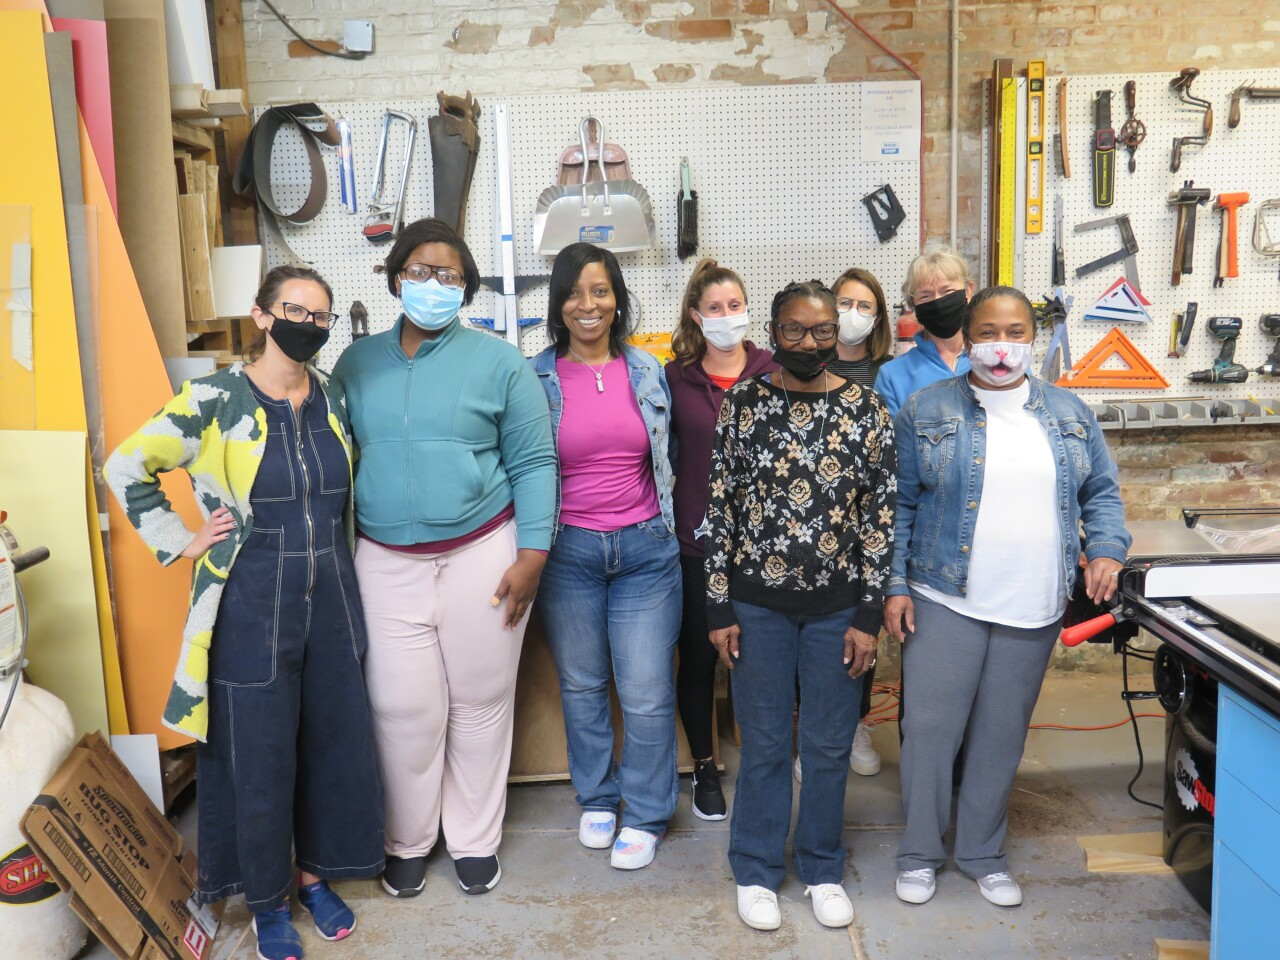 This photo shows eight women who are part of the Owning Your Own Voice woodworking class.